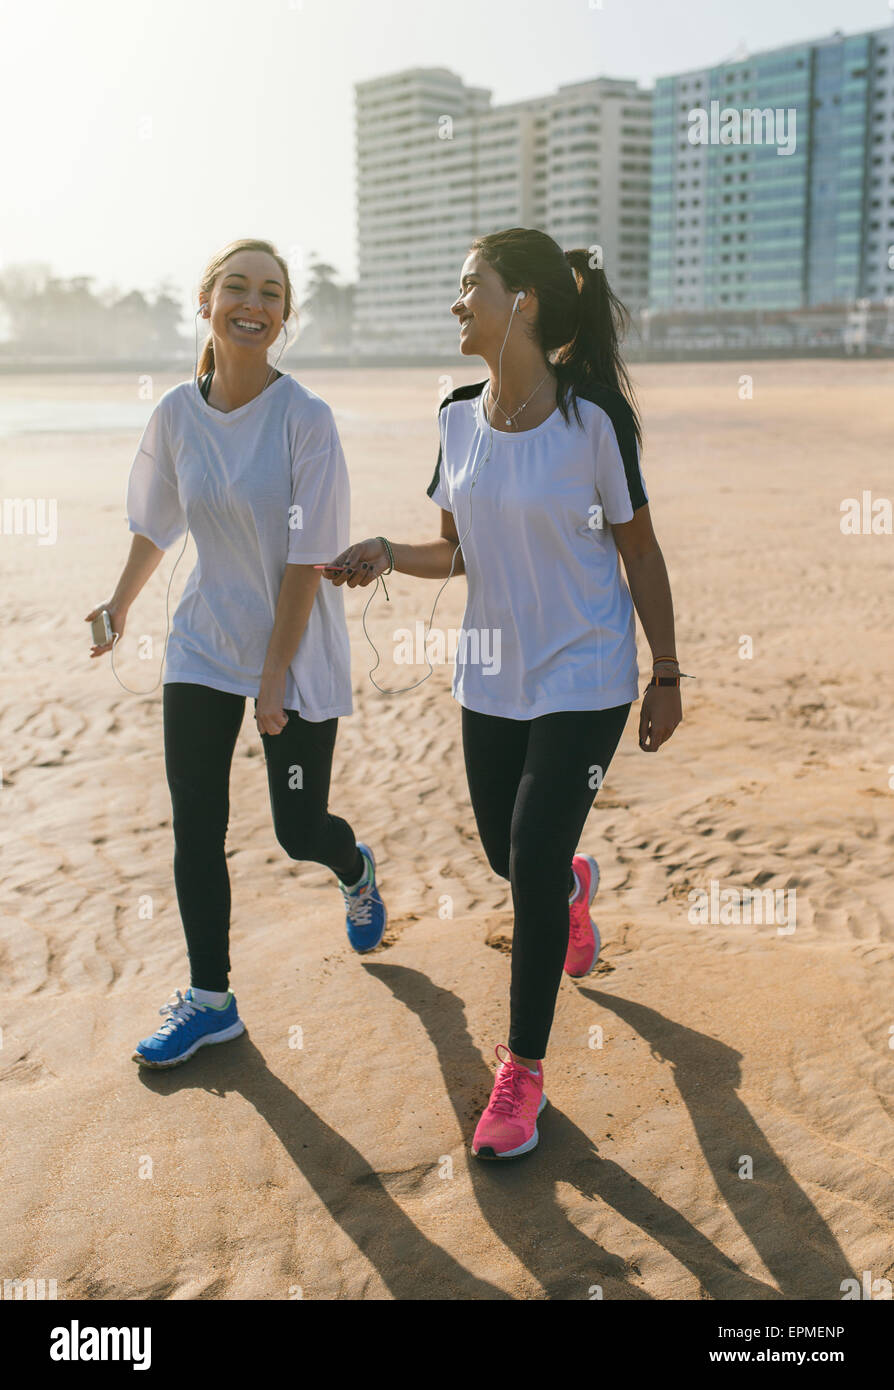 Spain, Gijon, two sportive young women with earbuds walking on the beach - Stock Image